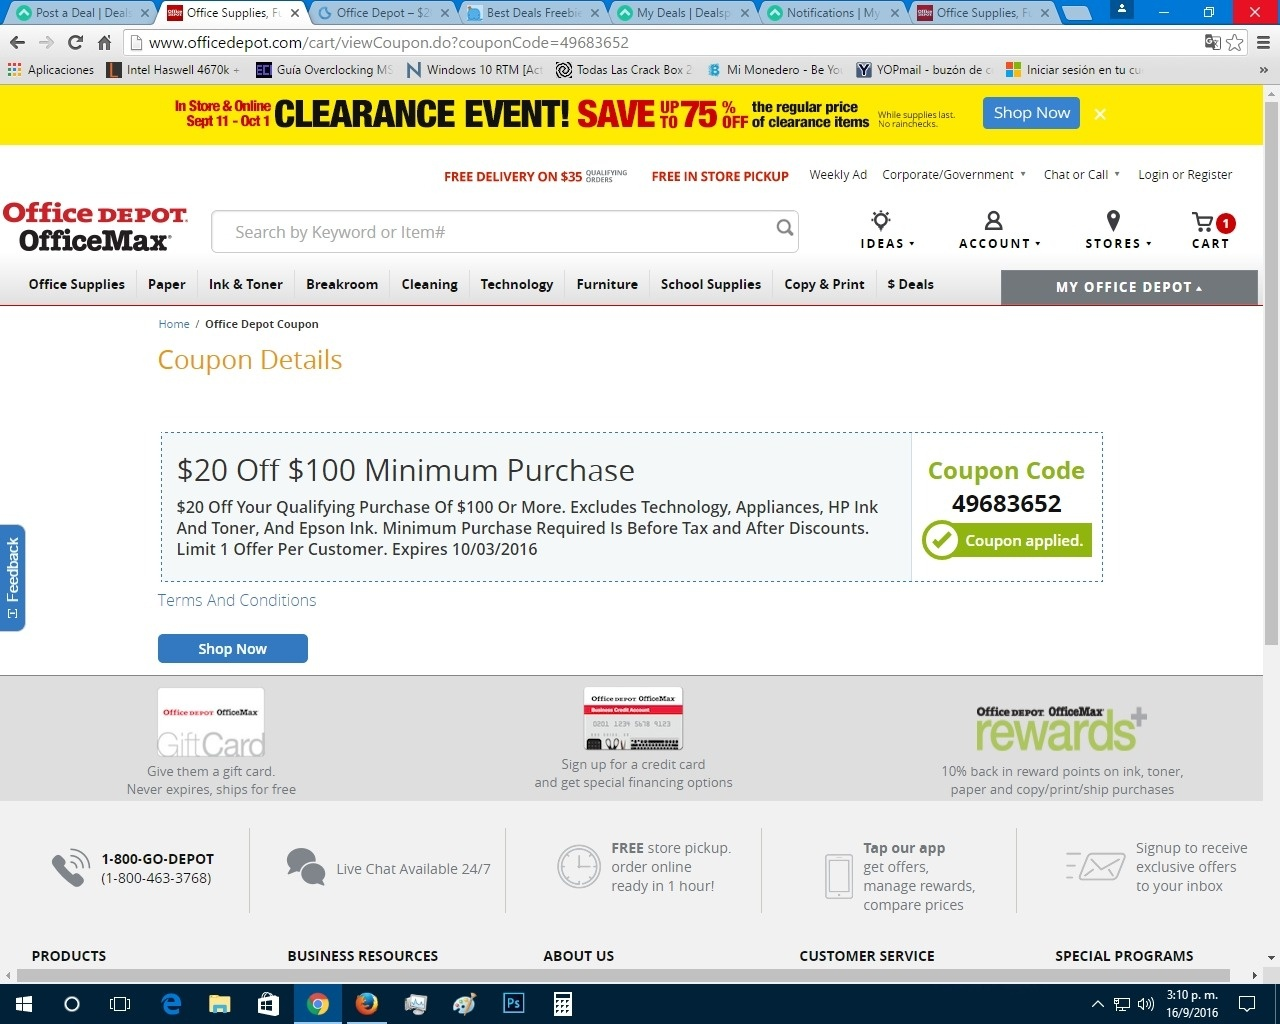 Avg Coupons - Crazy 8 Printable Coupons September 2018 - Free Printable Las Vegas Coupons 2014